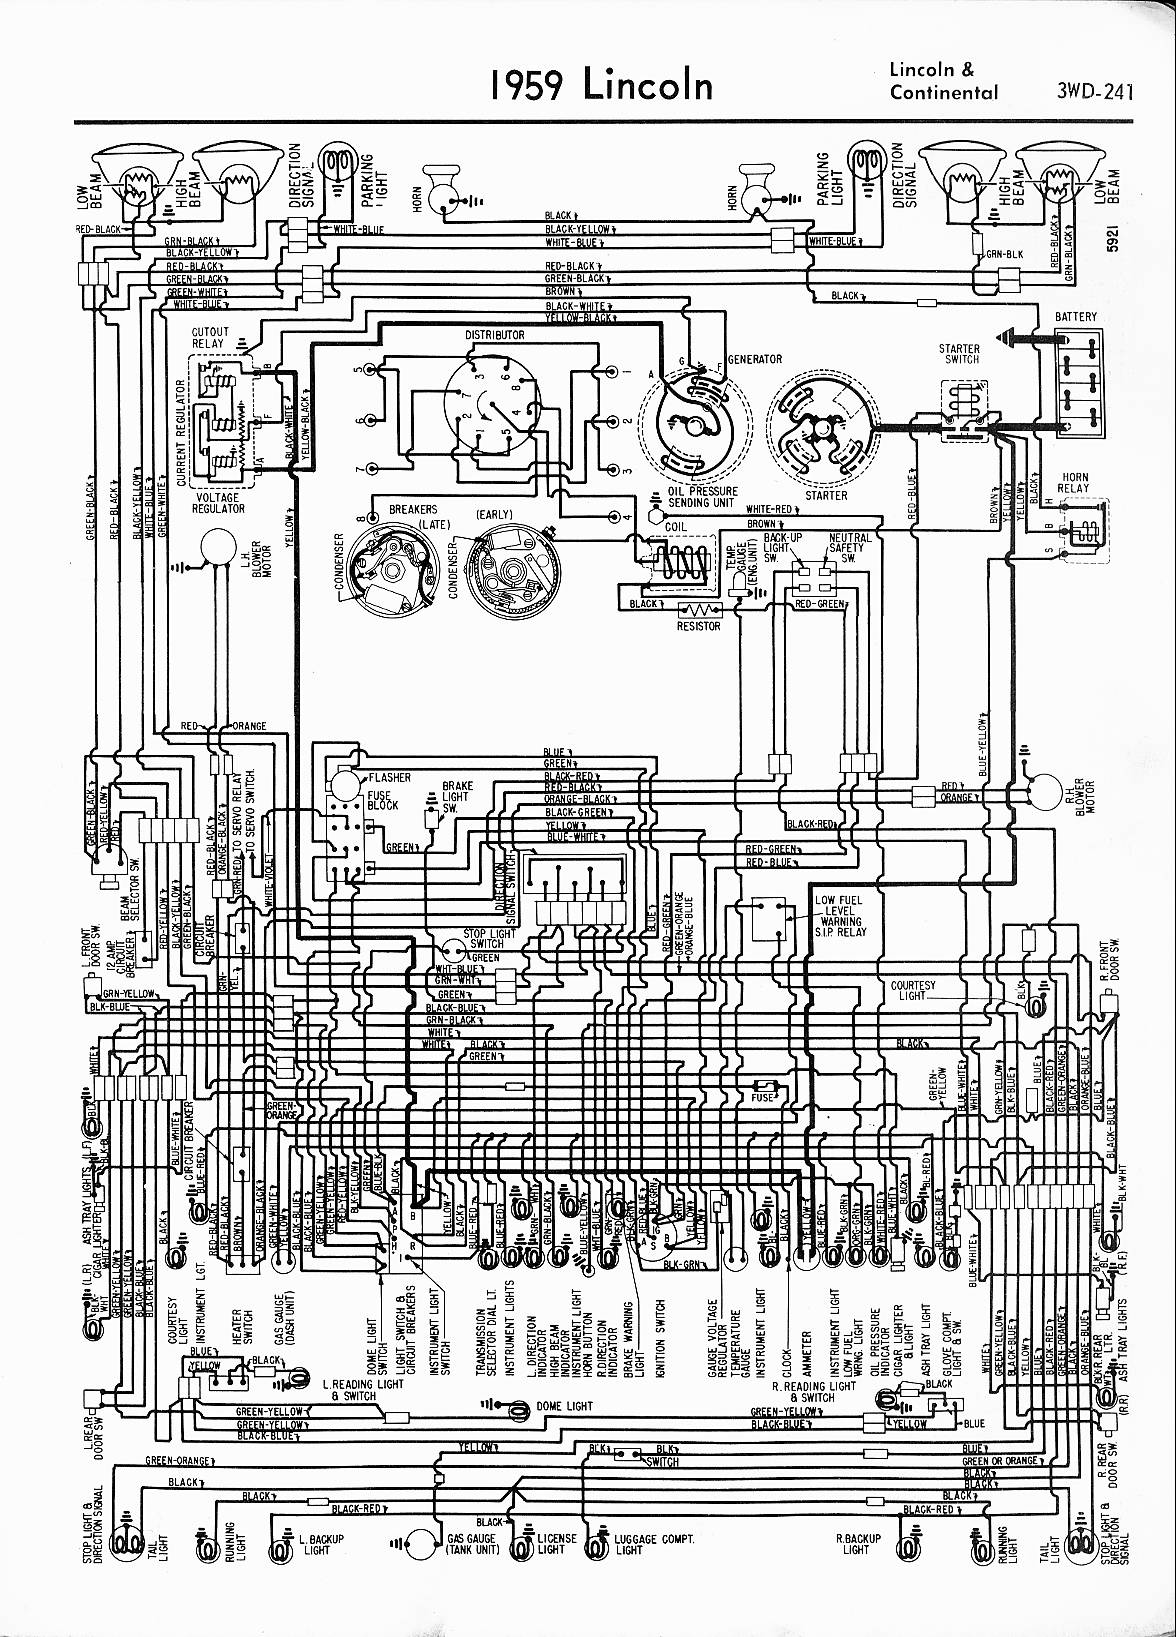 jeep wiring diagram for 57 house wiring diagram symbols u2022 rh maxturner  co 1980 Jeep CJ7 Wiring-Diagram Jeep Commander Wiring-Diagram